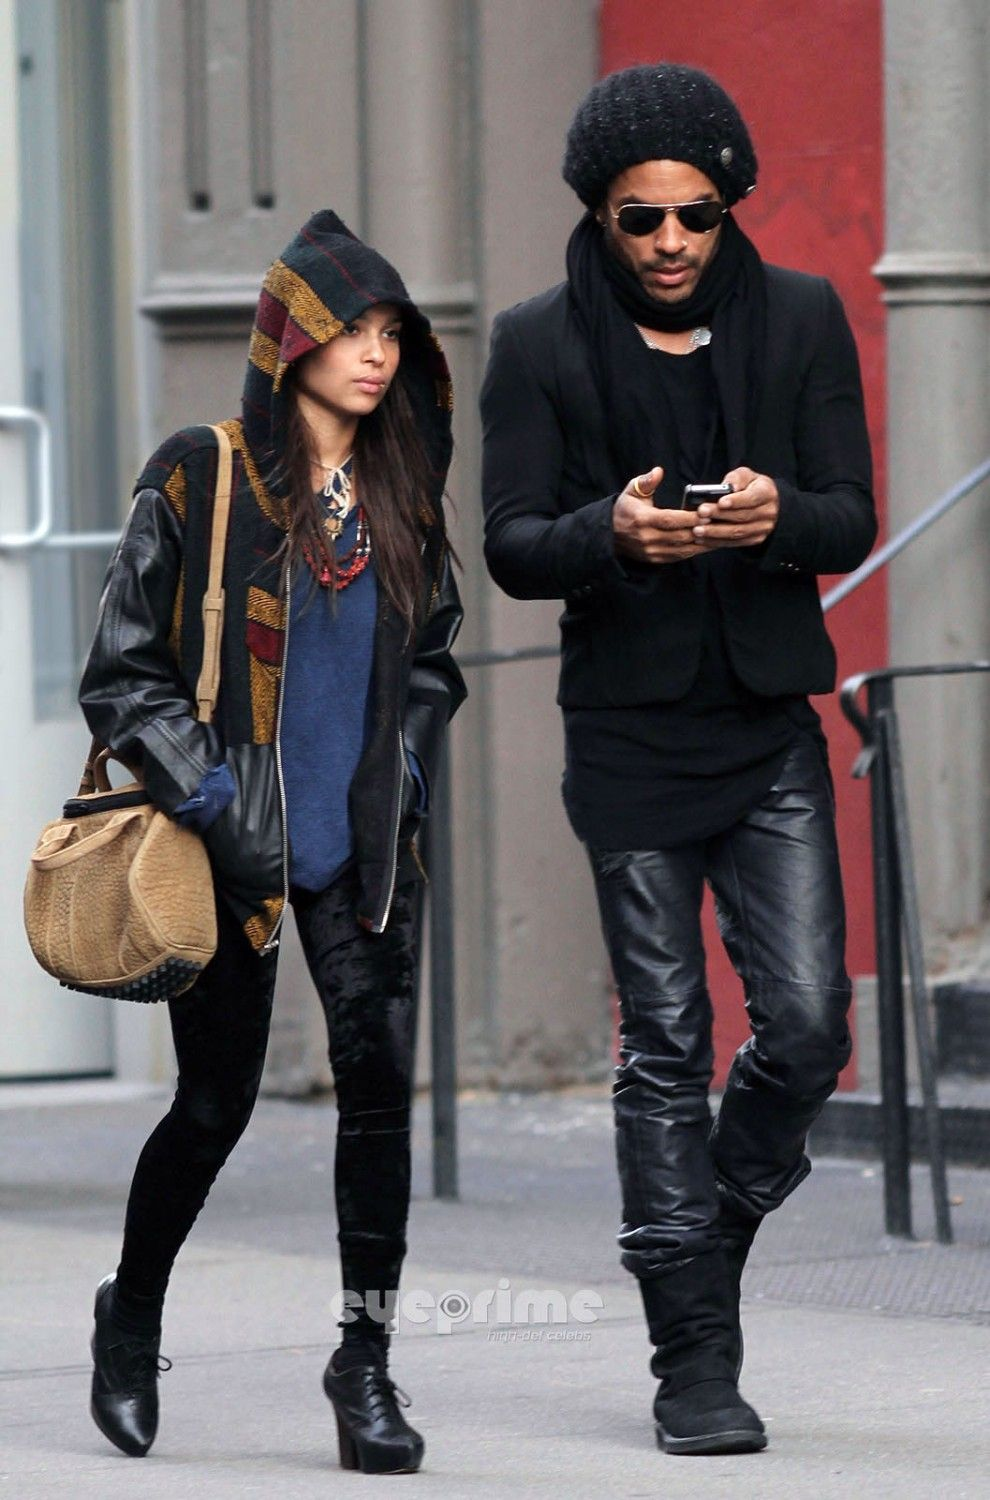 Father and daughter style // Zoe and Lenny Kravitz. . I don't know them but they are both so stylish!